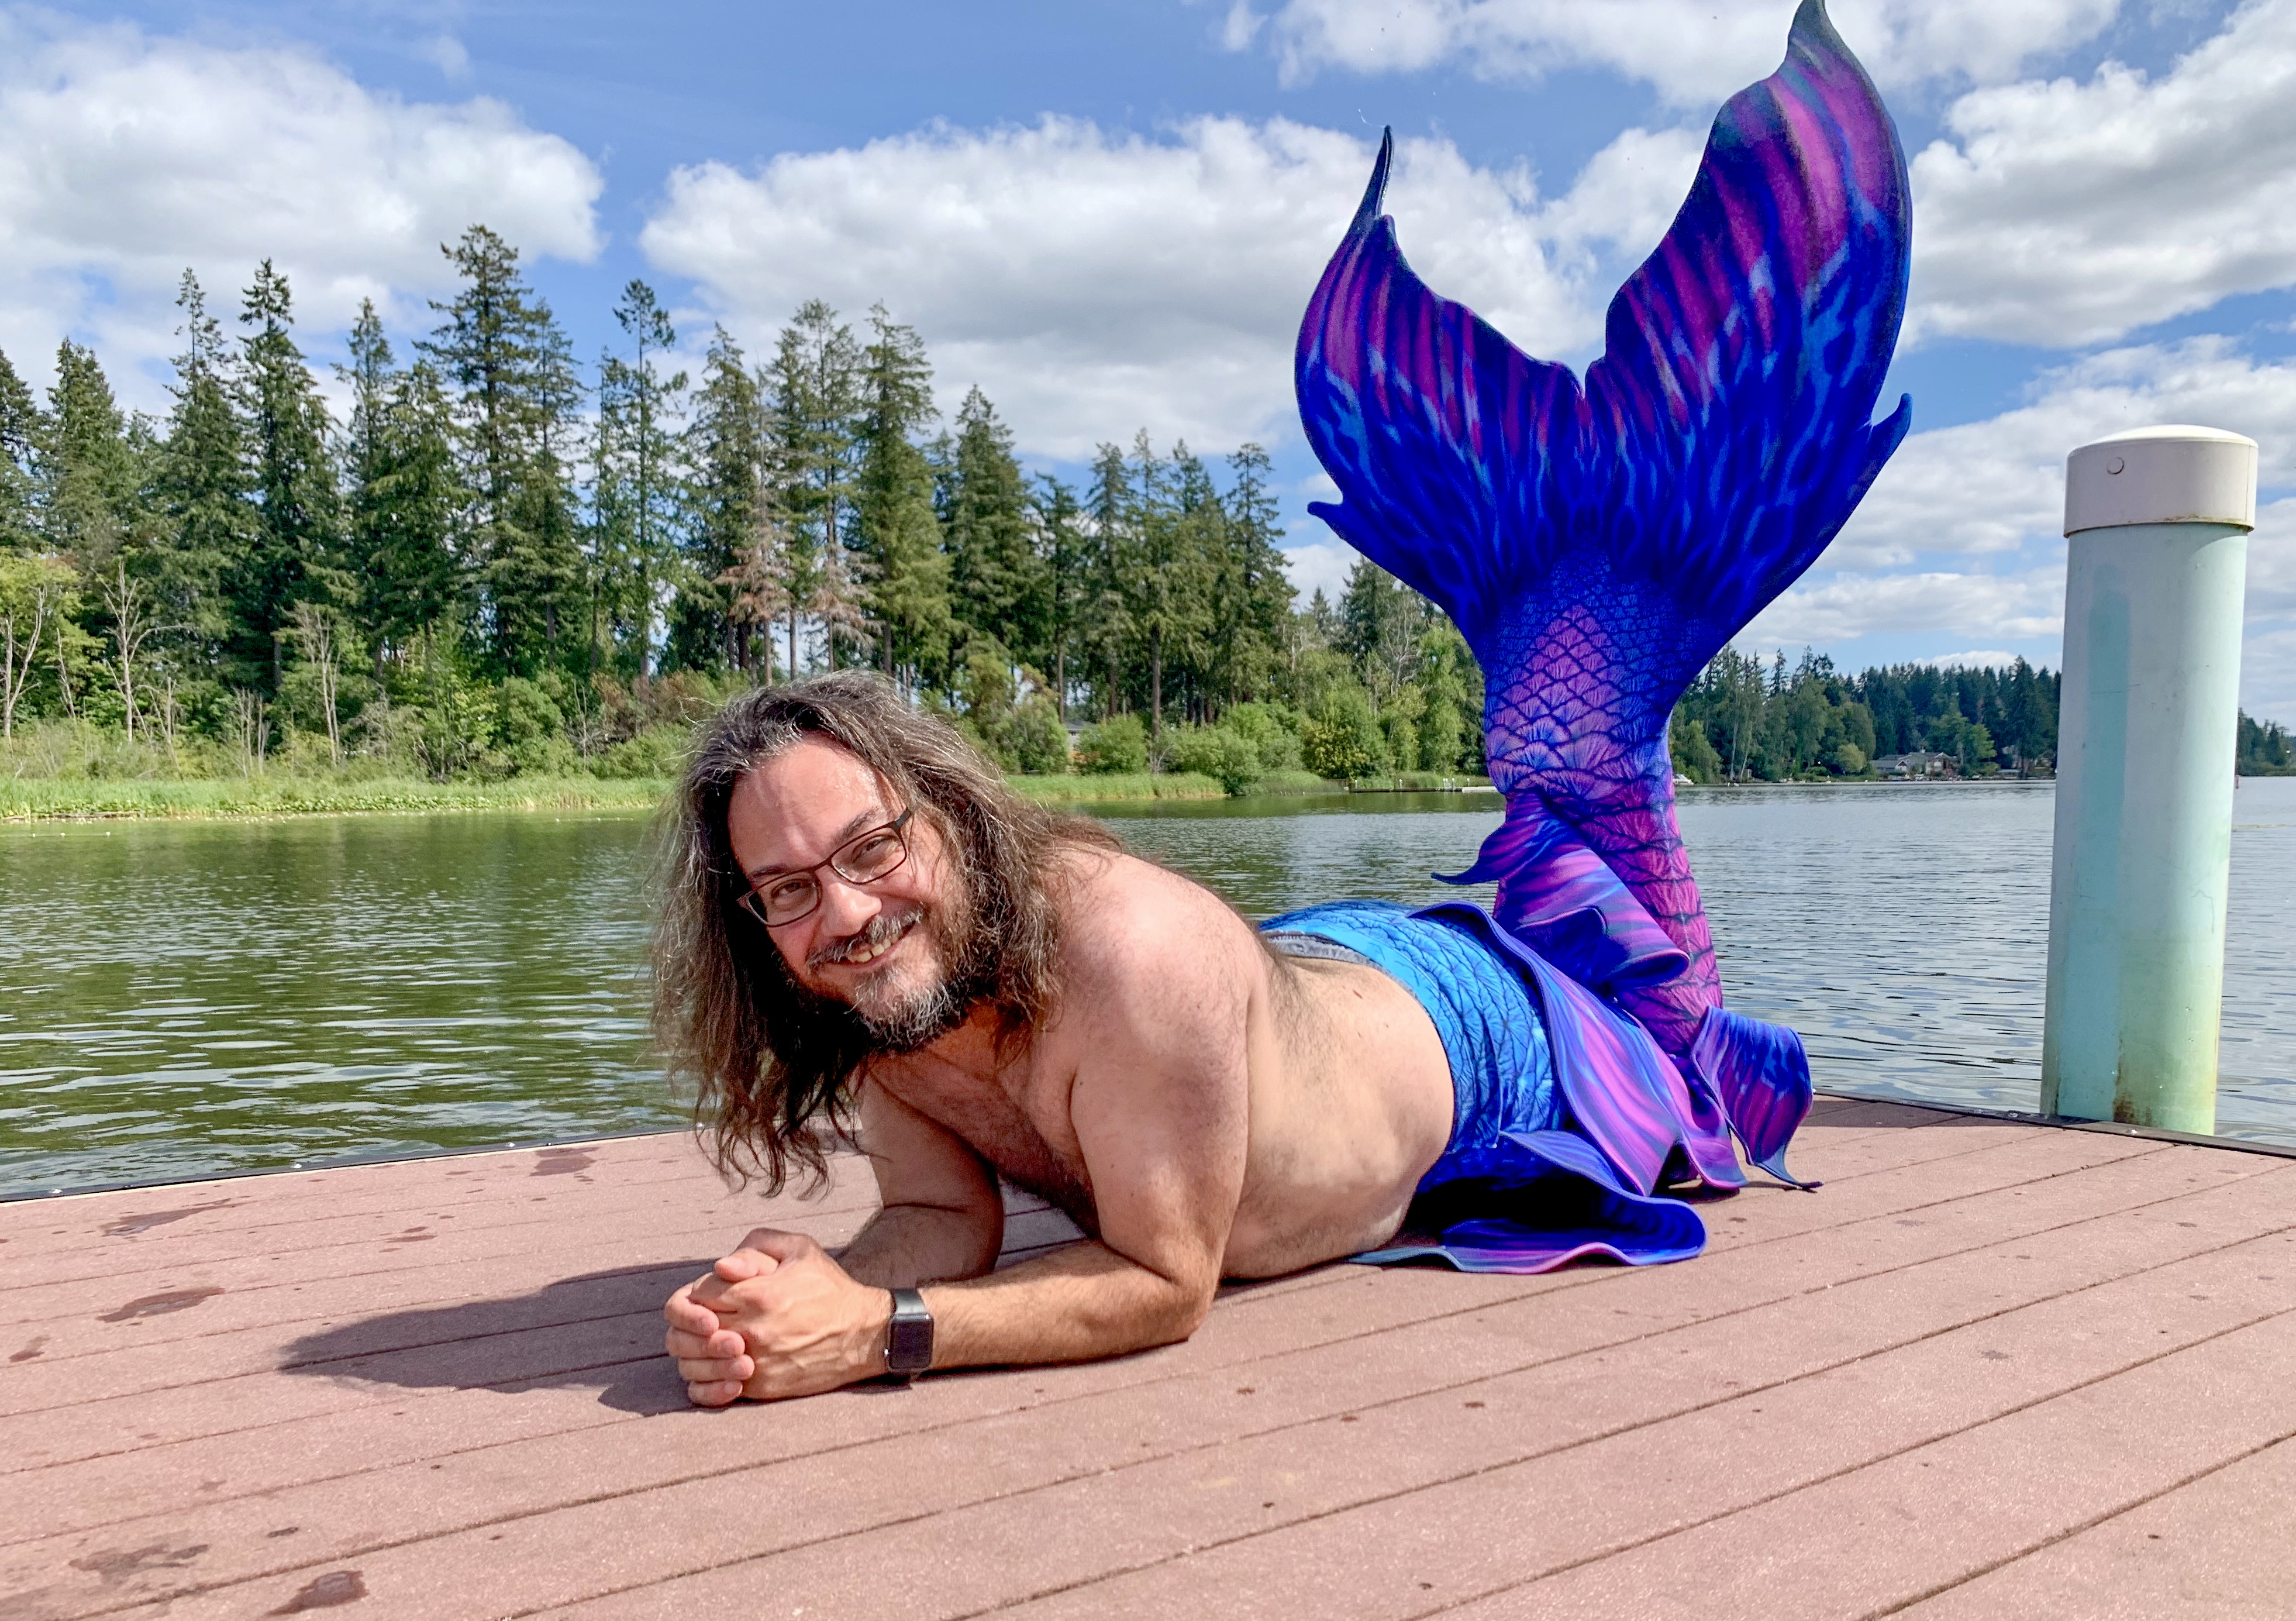 Mermaid Me Summer 2020 Photo #1237